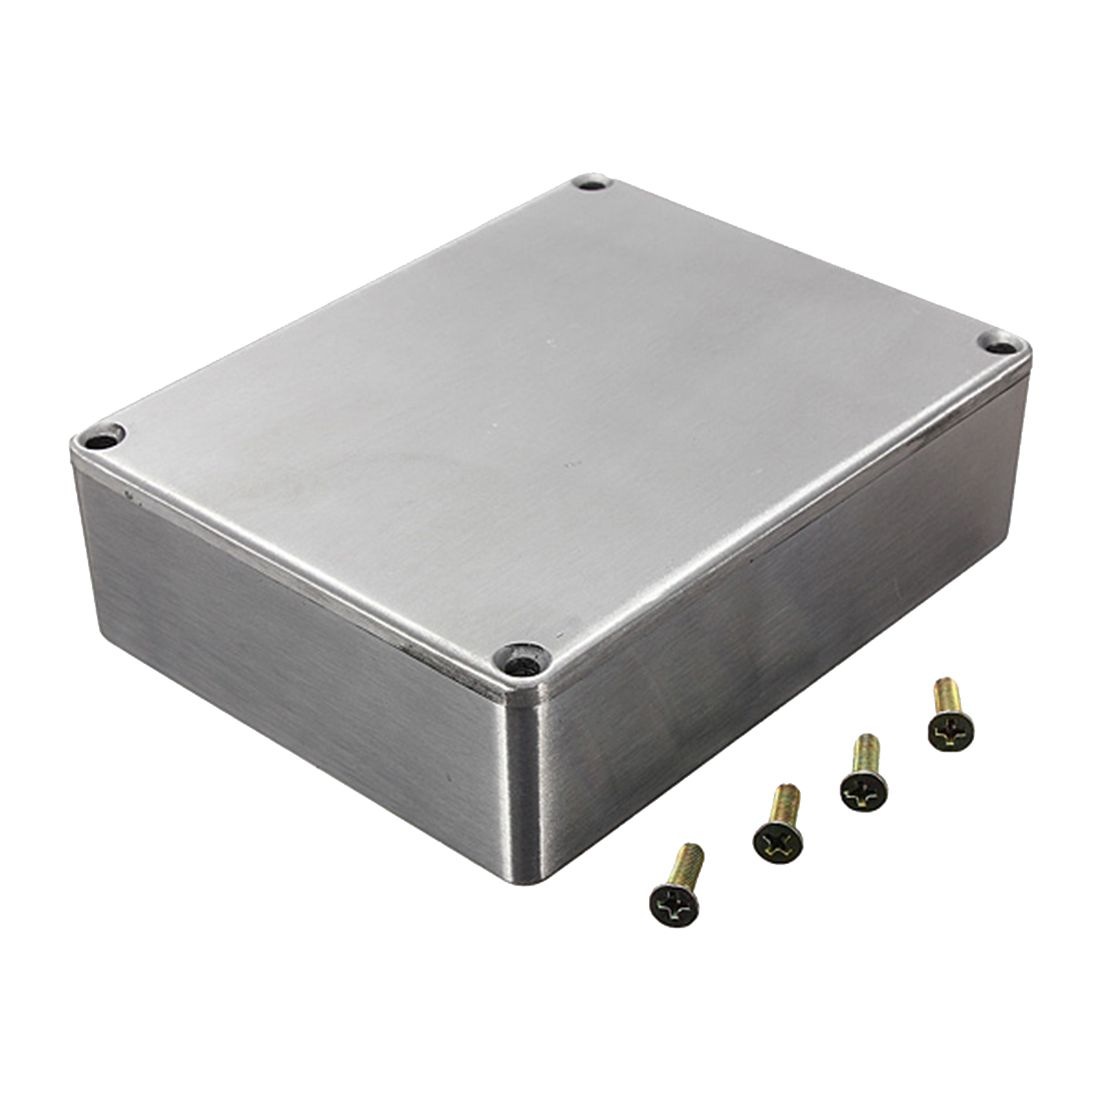 HOT 5X 1590BB Guitar Effects Box Container Aluminum 120x95x35mm Silver<br>